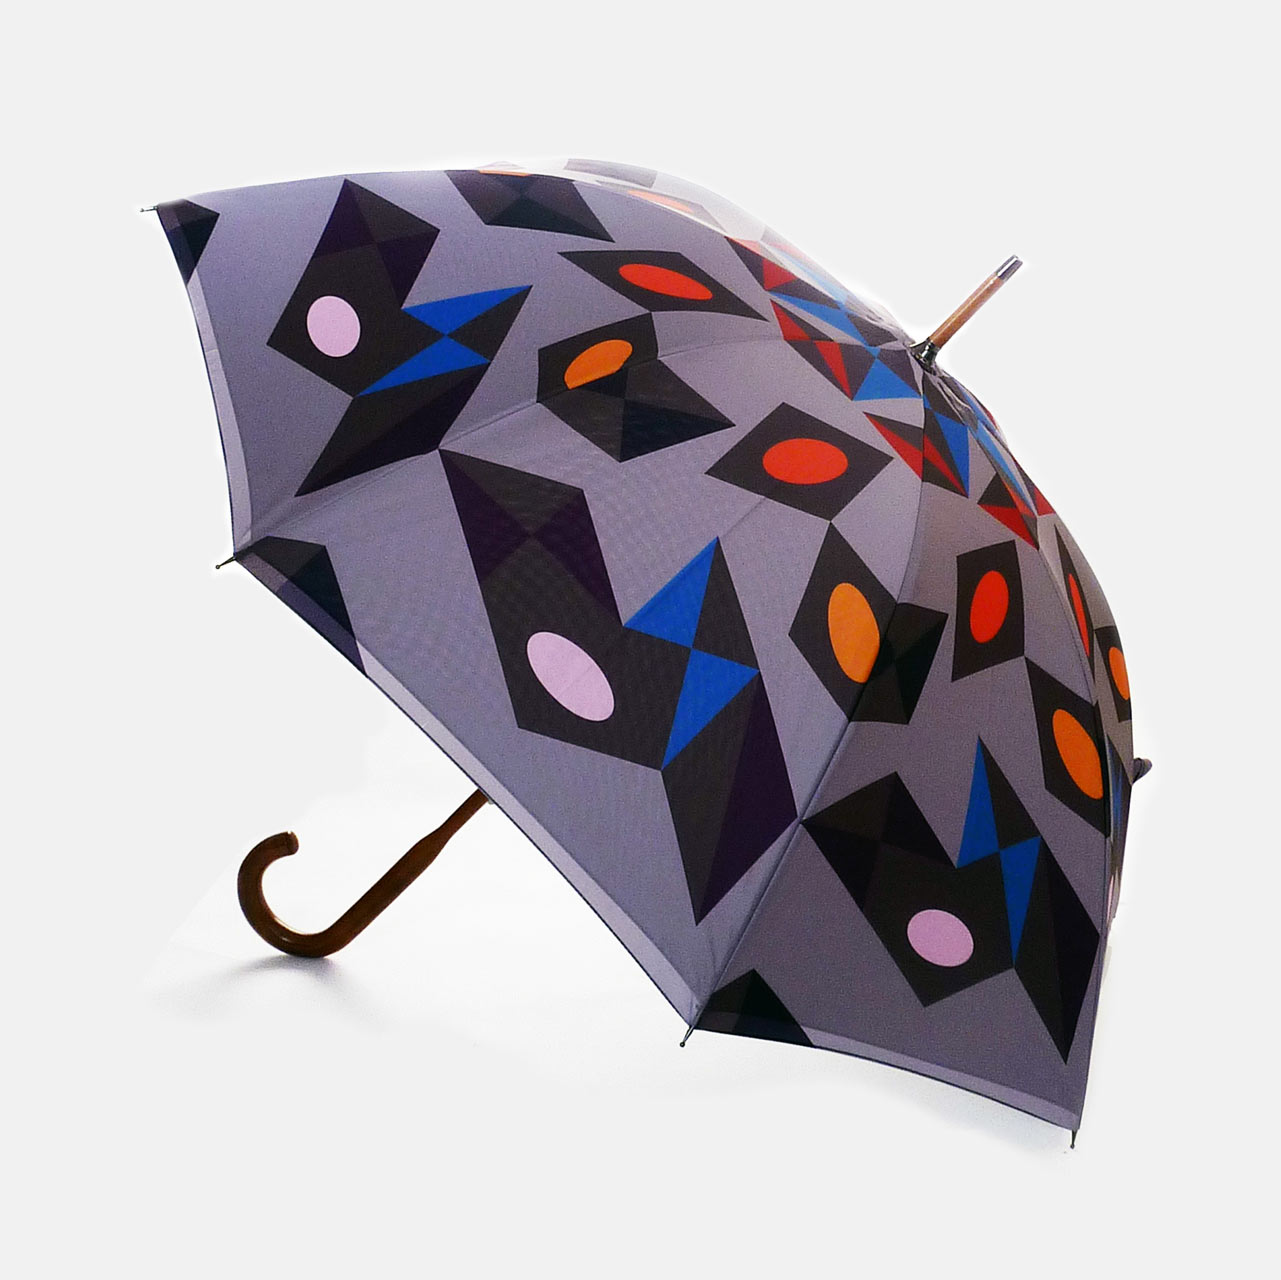 DavidDavid-Walking-Stick-Umbrella-8-U7